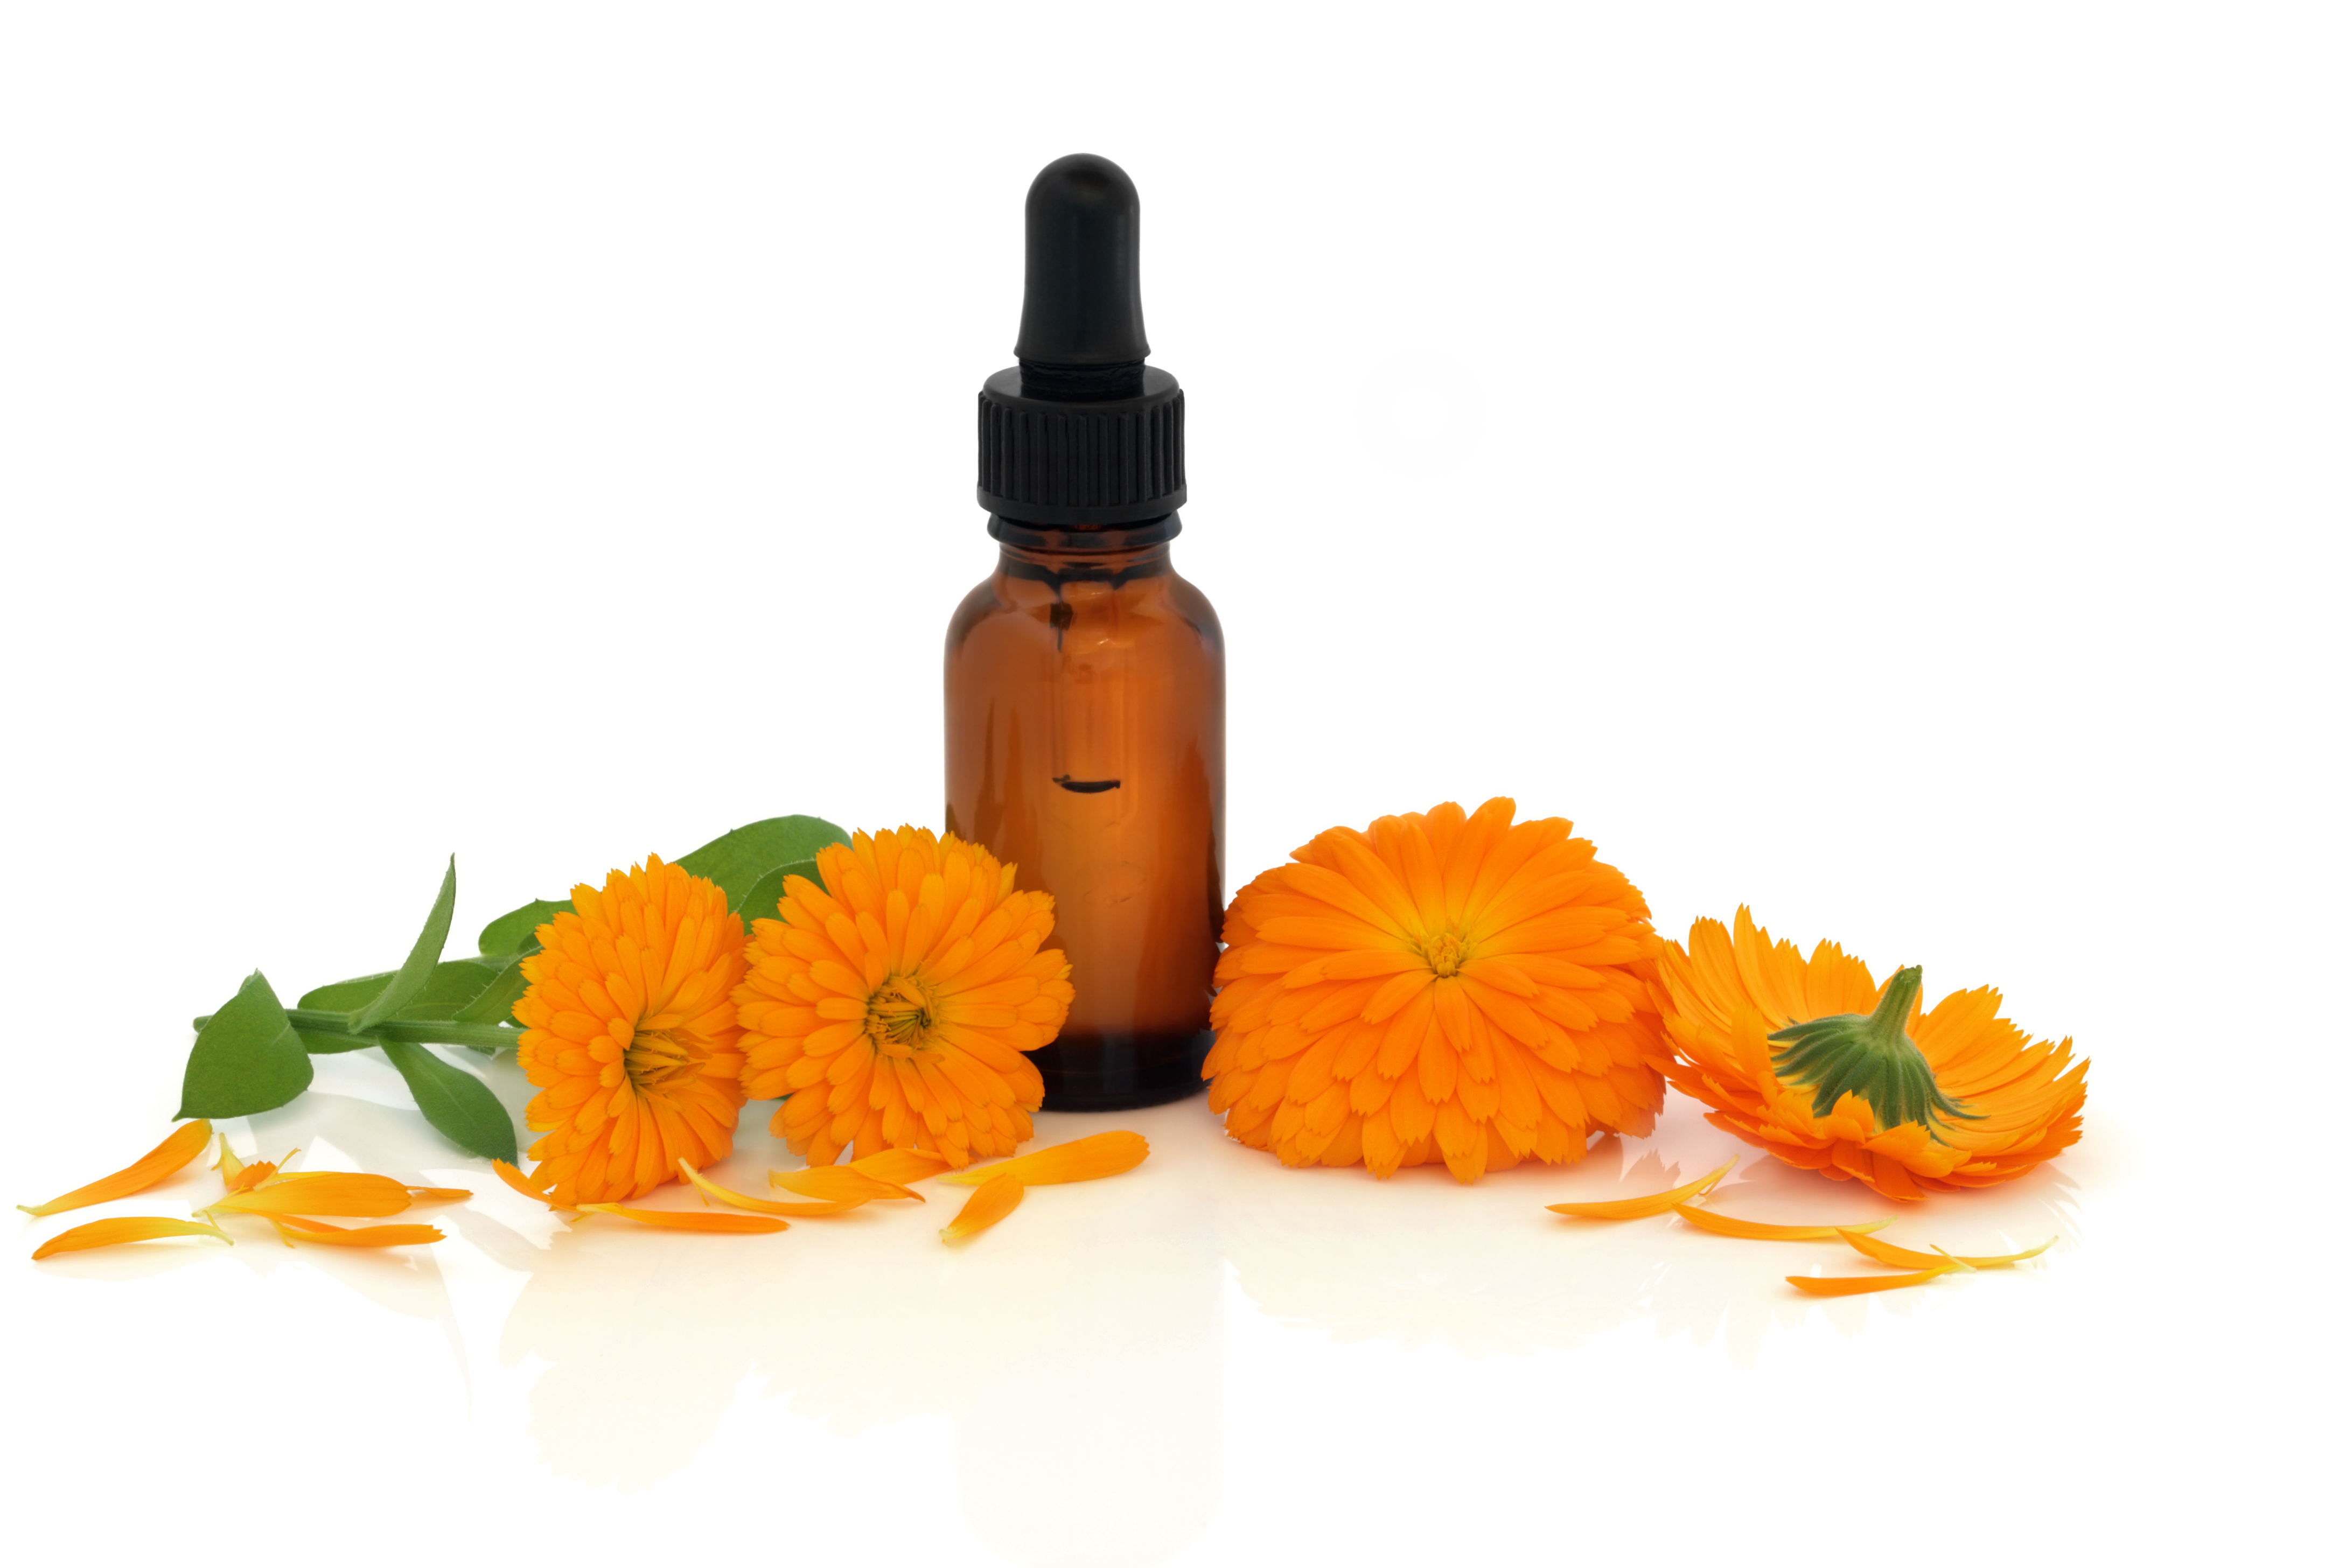 How to use Bach flower remedies.